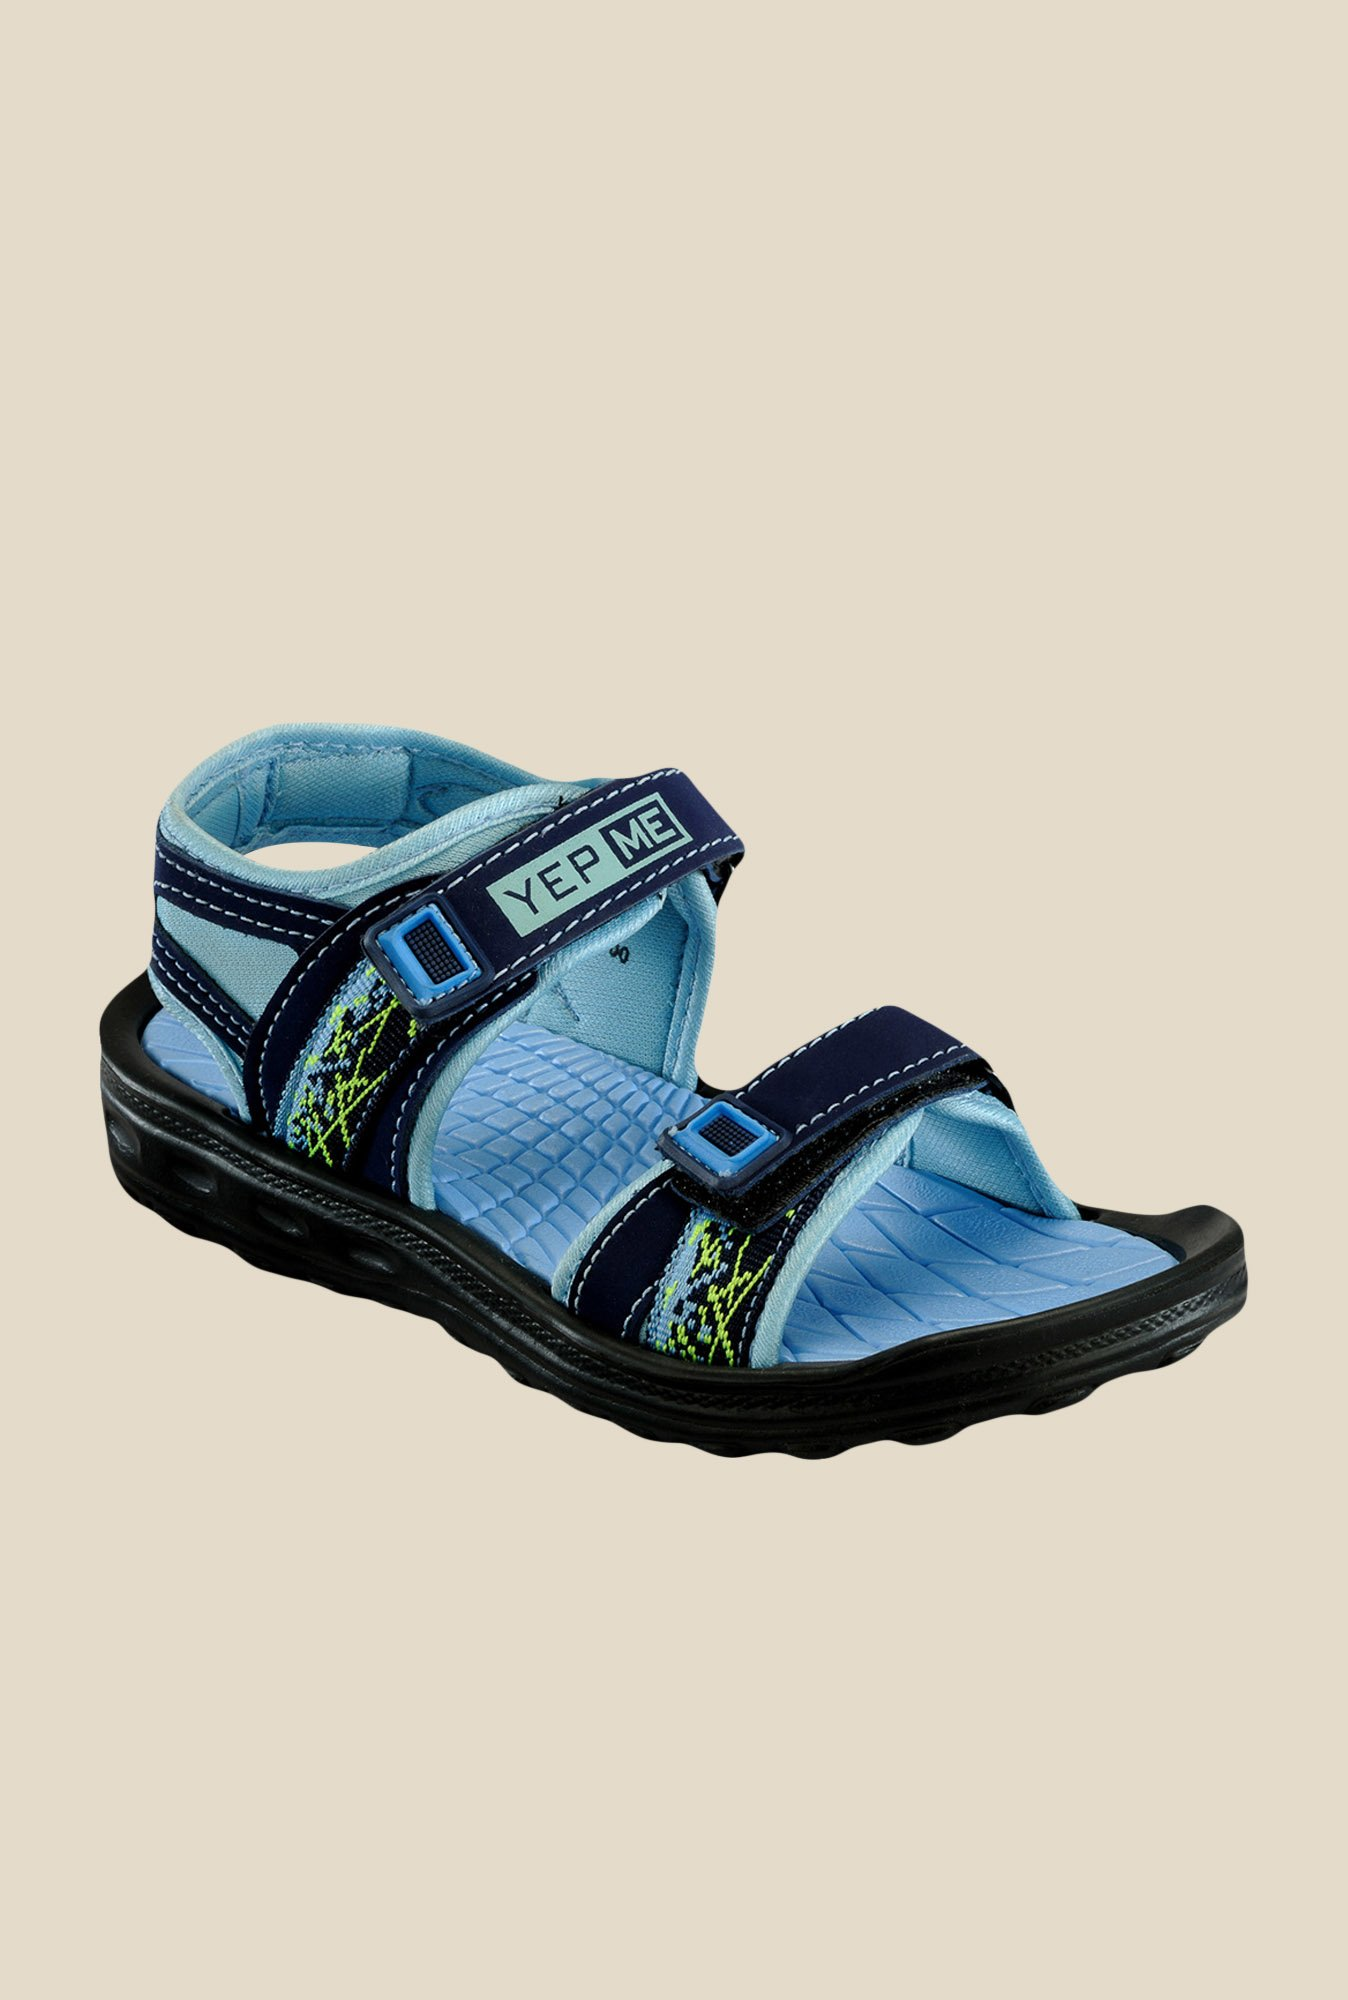 Yepme Navy Floater Sandals